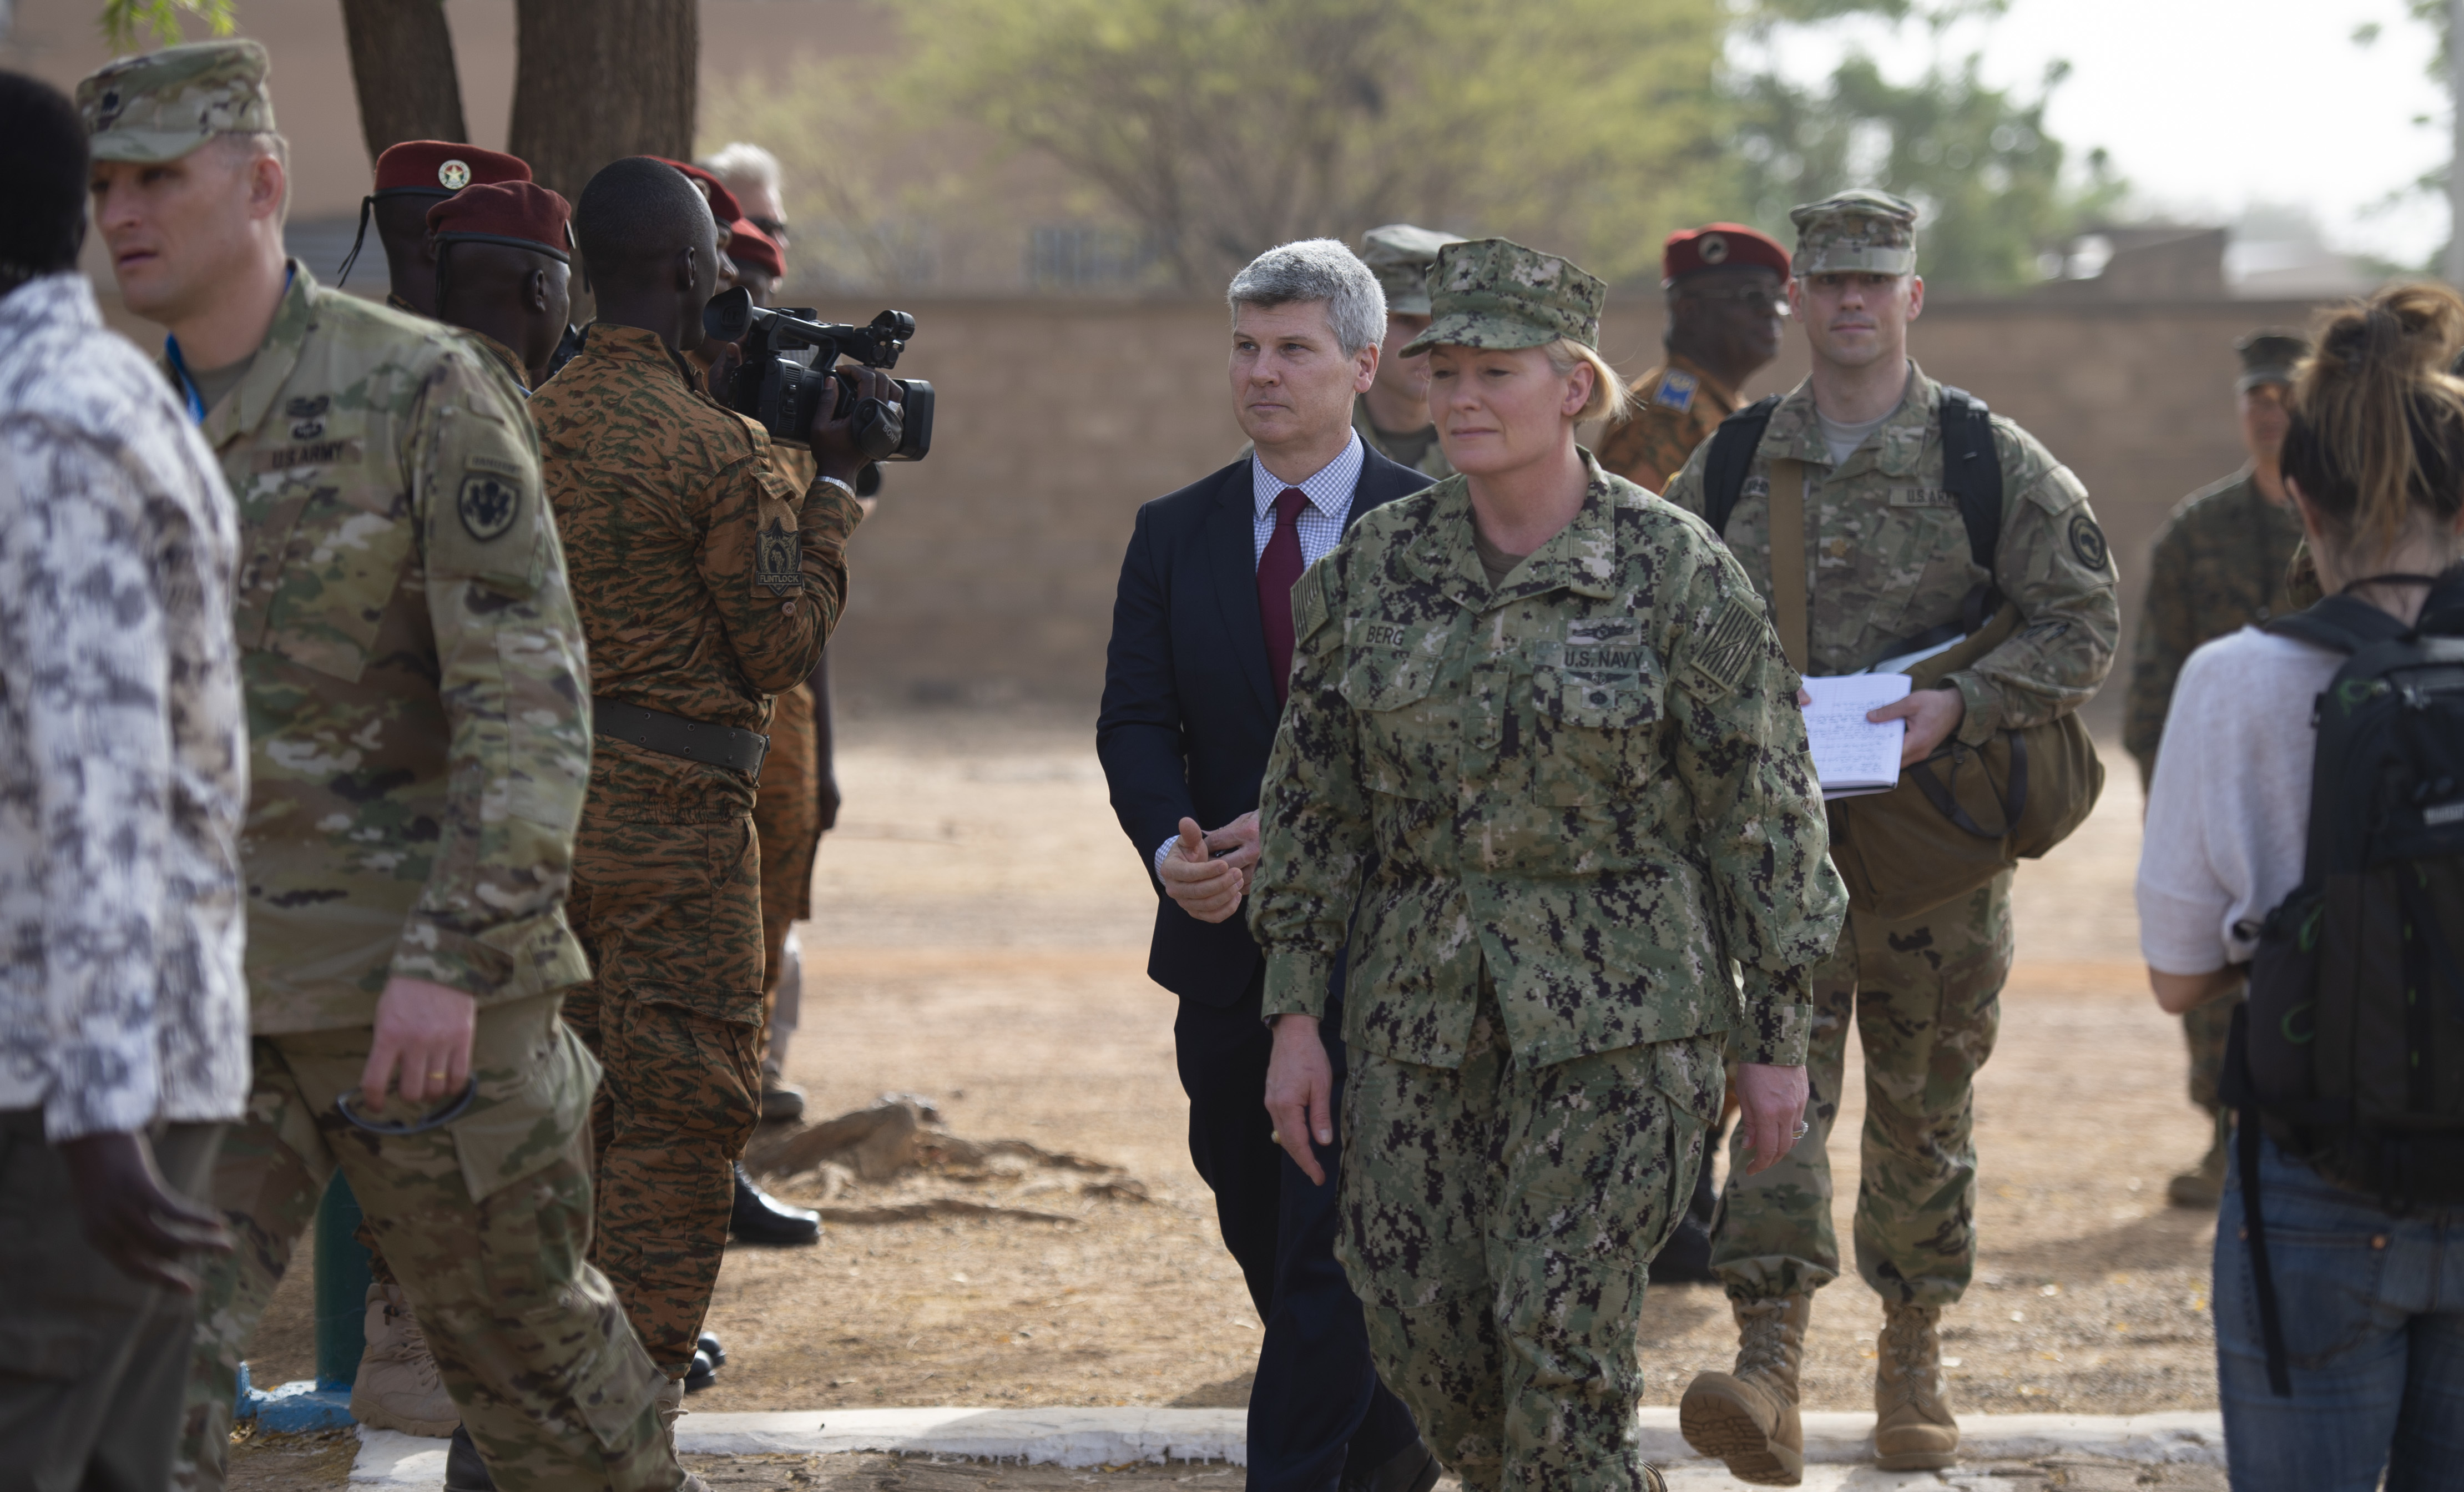 U.S. Africa Command director of intelligence, Rear Adm. Heidi Berg, attends the opening ceremony to Flintlock 2019, in Ouagadougou, Burkina Faso.  Flintlock is U.S. Africa Command's premier and largest special operations forces exercise.(U.S. Navy photo by MC2 (SW/AW) Evan Parker / released)